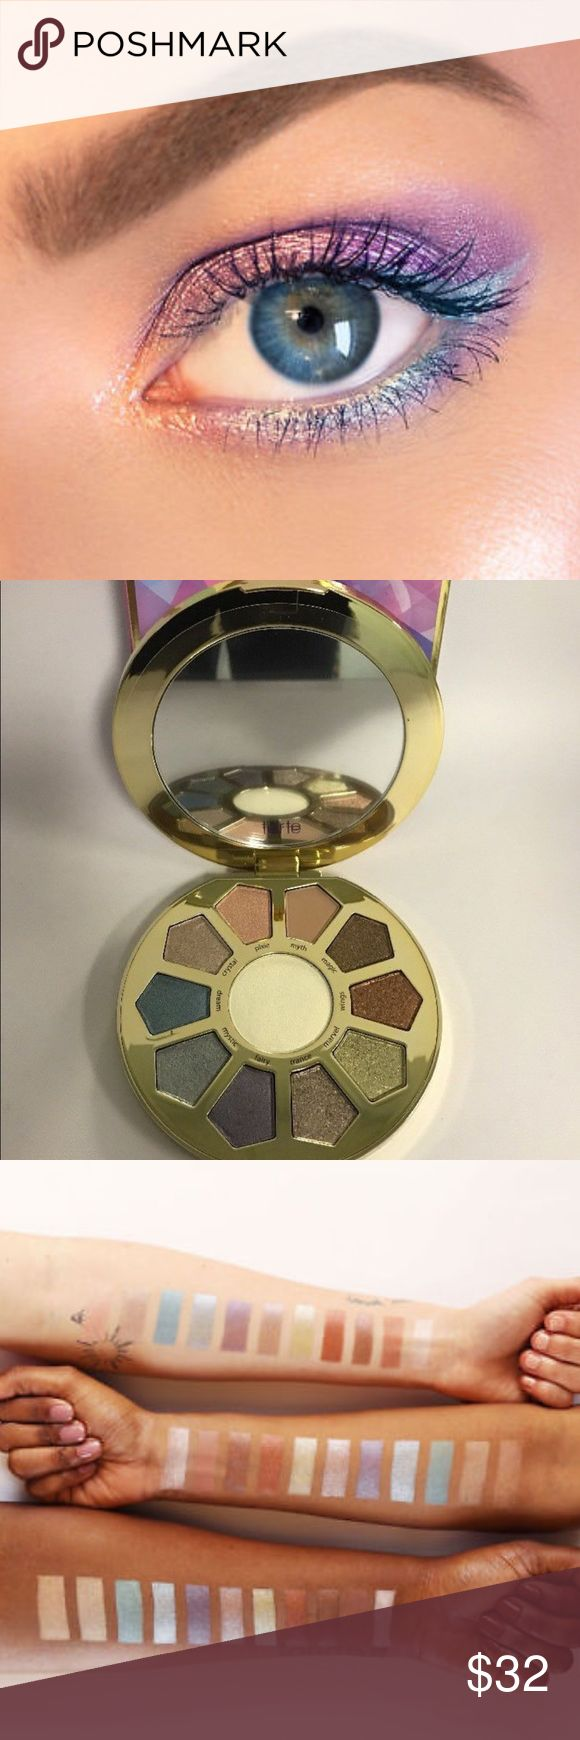 NWT Tarte Large Eyeshadow and Highlight Palette TARTE Large Eyeshadow and Highlight Palette - A kaleidoscopic, unicorn-inspired eyeshadows w:10 luminous shadows & a beautiful  eye & cheek highlighter. The shades can be layered with the matte base & the strobing eye & cheek highlighter for a multi-faceted, fairy-like glow. With Amazonian clay & mineral pigments, the silky-soft, enchanting formula blends to a fine longwearing finish with no fallout or chalkiness.  Condition: New in Box Retail…